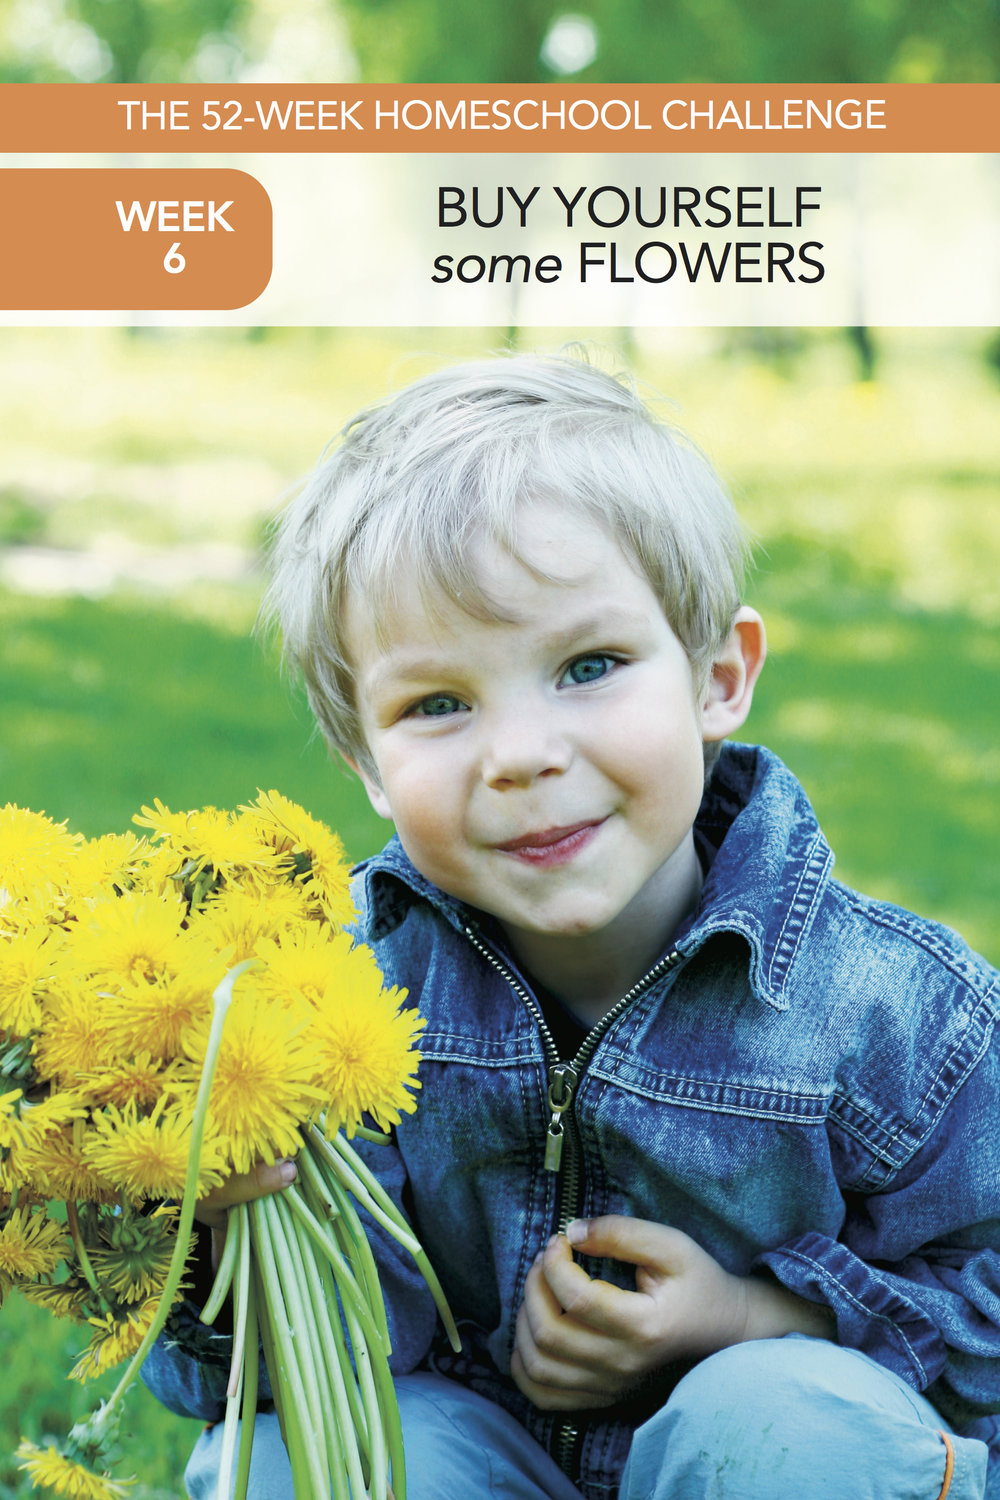 52 Weeks of Happier Homeschooling Week 6: Buy Yourself Some Flowers